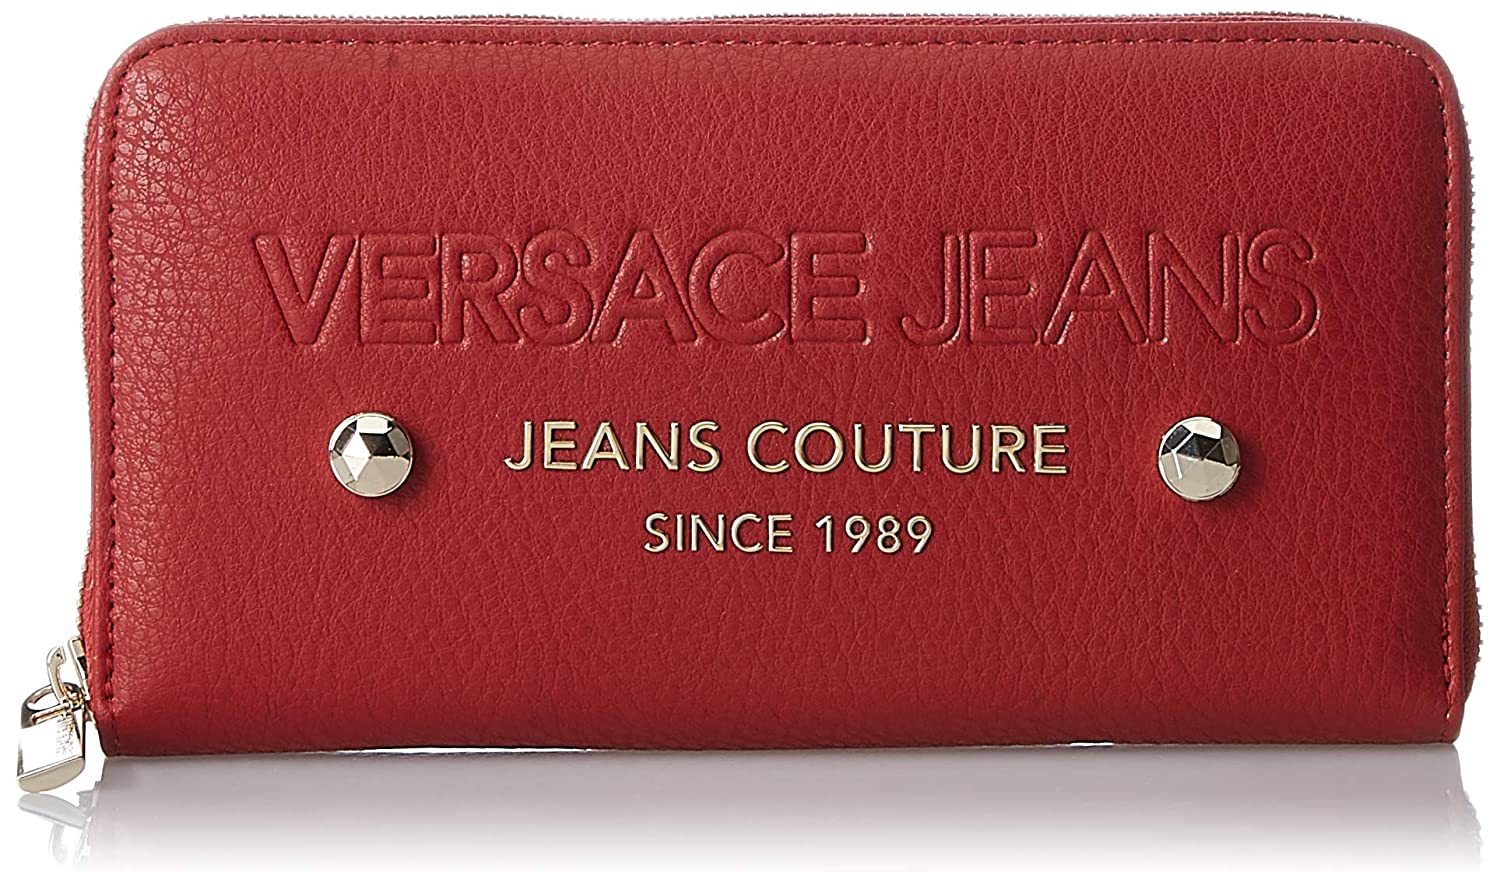 Versace Jeans Ee3vsbps1 - Carteras Mujer